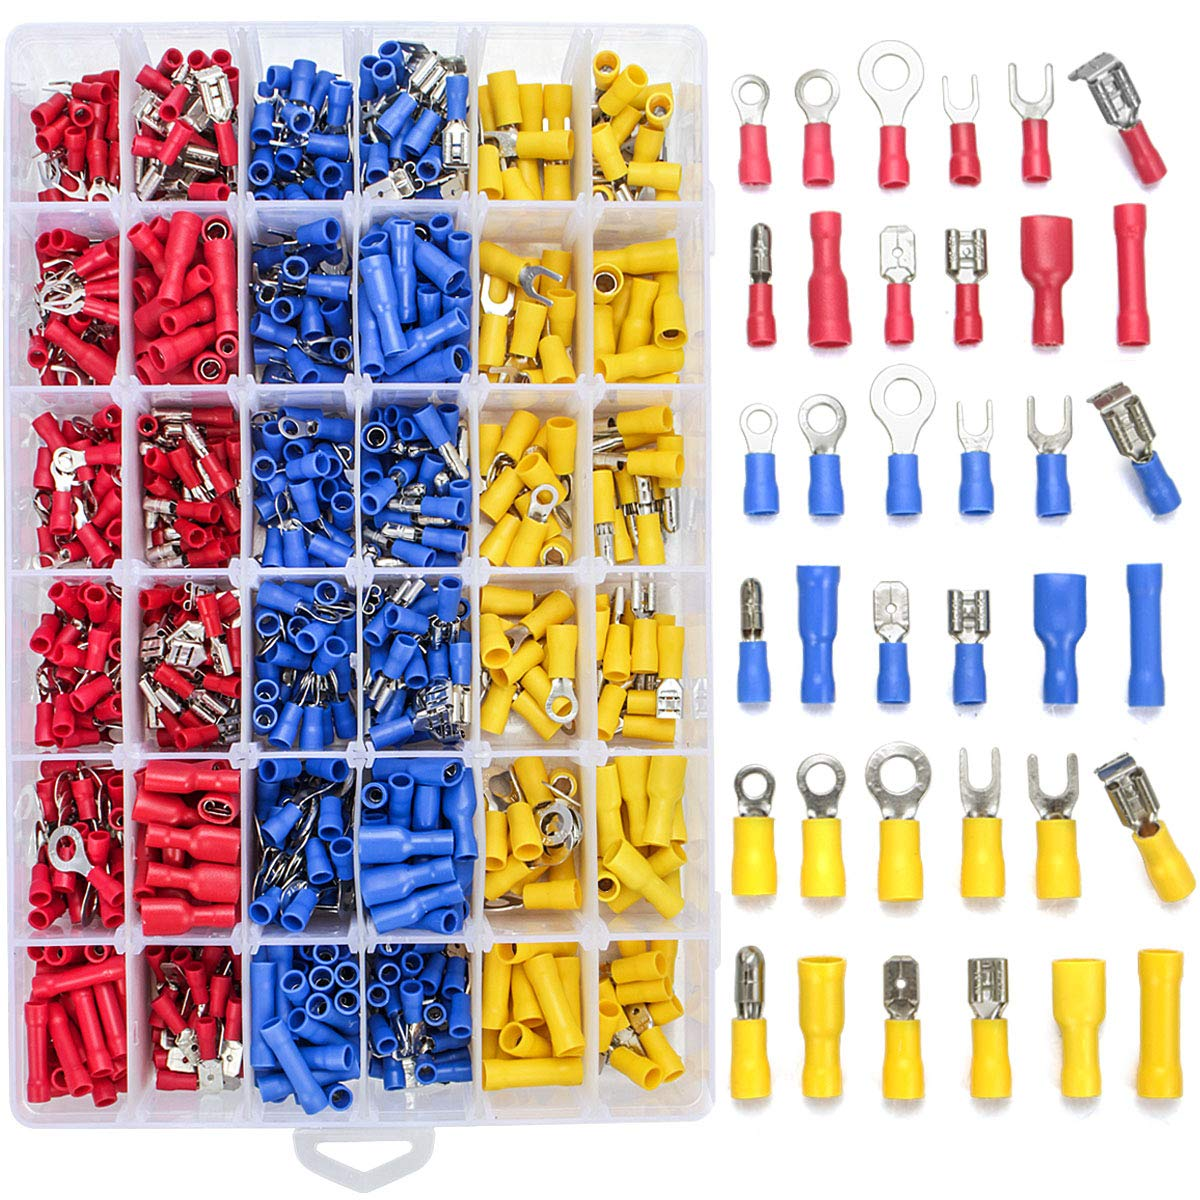 Qibaok 840PCS Electrical Wire Connectors, Insulated Wire Crimp Terminals, Mixed Butt Ring Fork Spade Bullet Quick Disconnect Assortment Kit by Qibaok